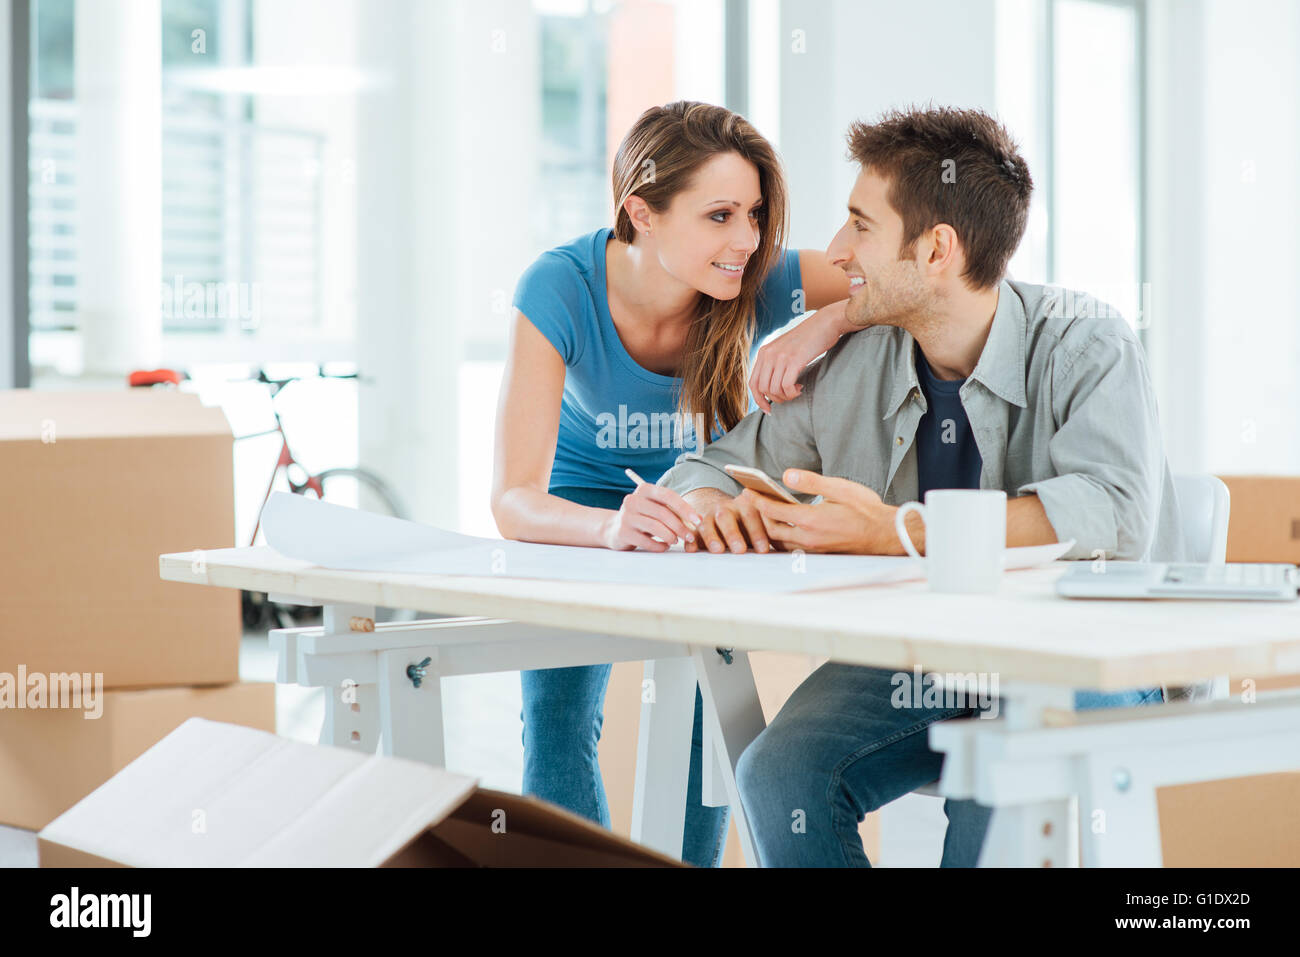 Romantic loving couple planning and designing their new house, they are staring at each other's eyes - Stock Image